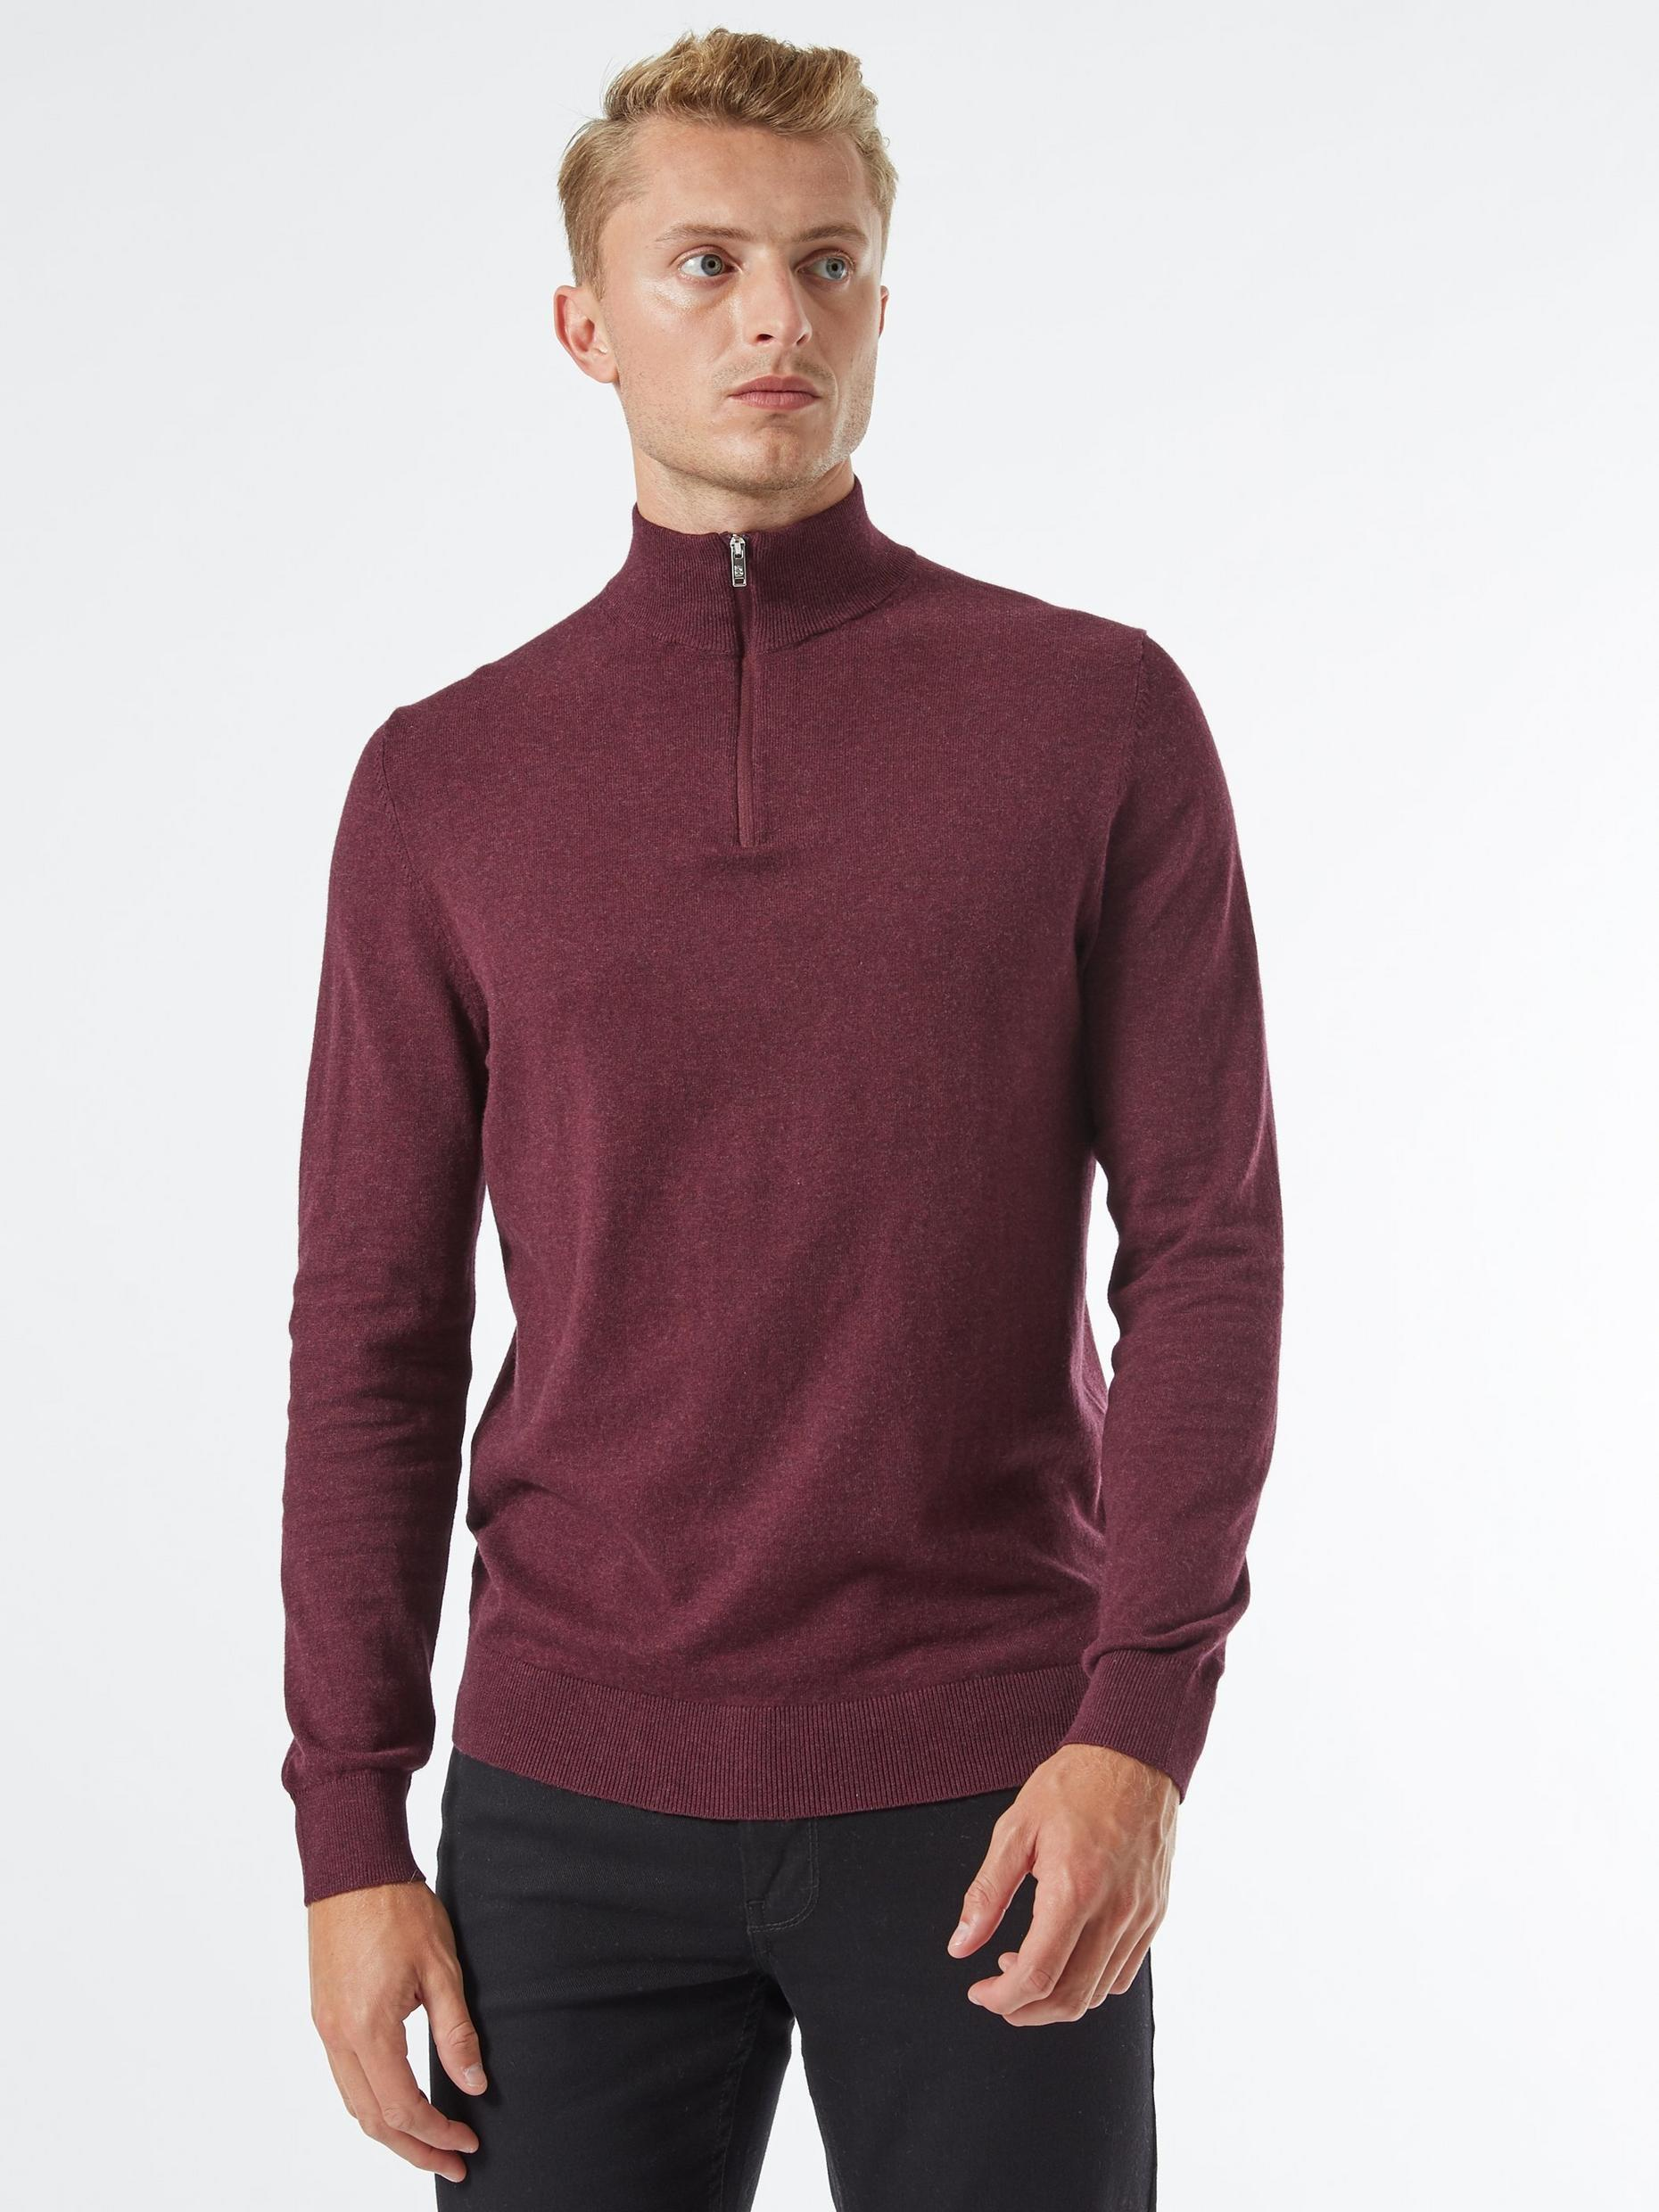 Burgundy Half Zip Jumper with Organic Cotton